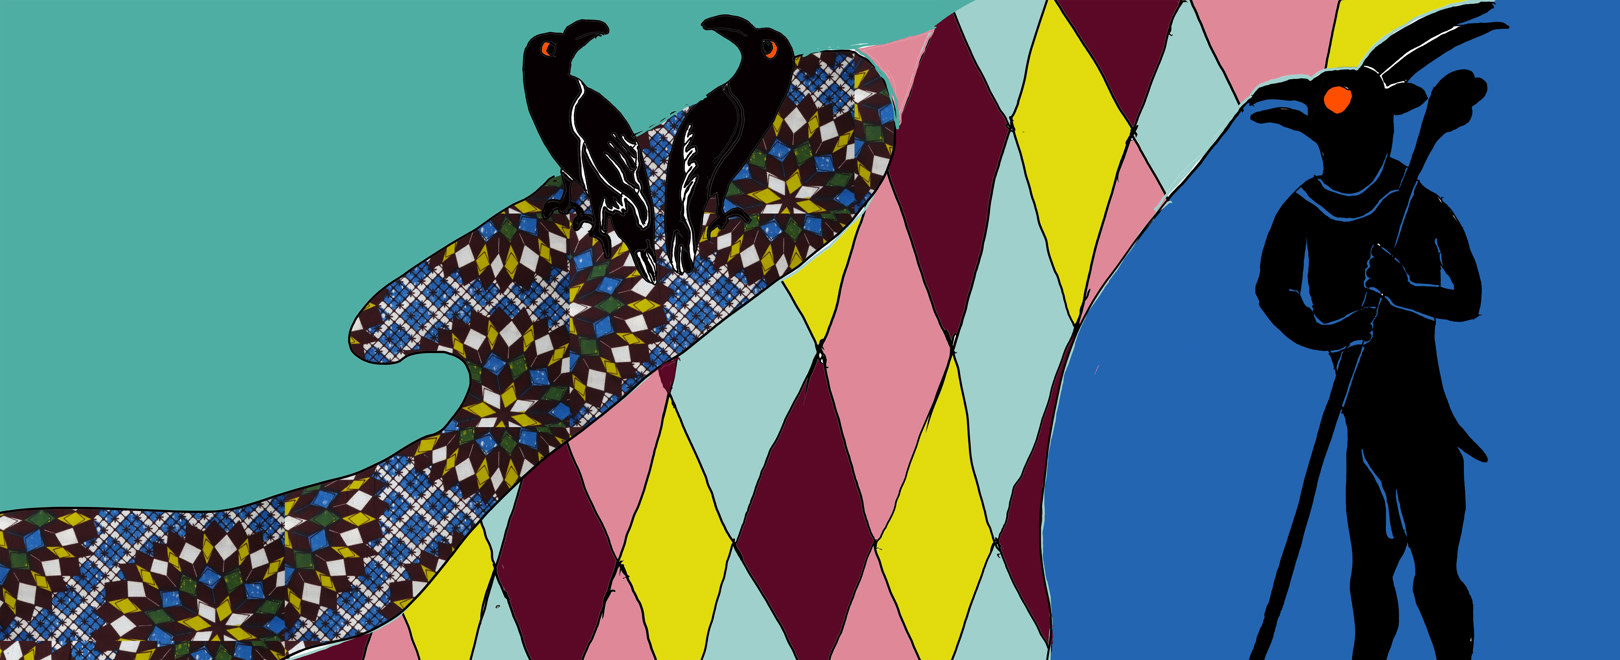 Yinka Shonibare to open exhibition at Hereford Cathedral